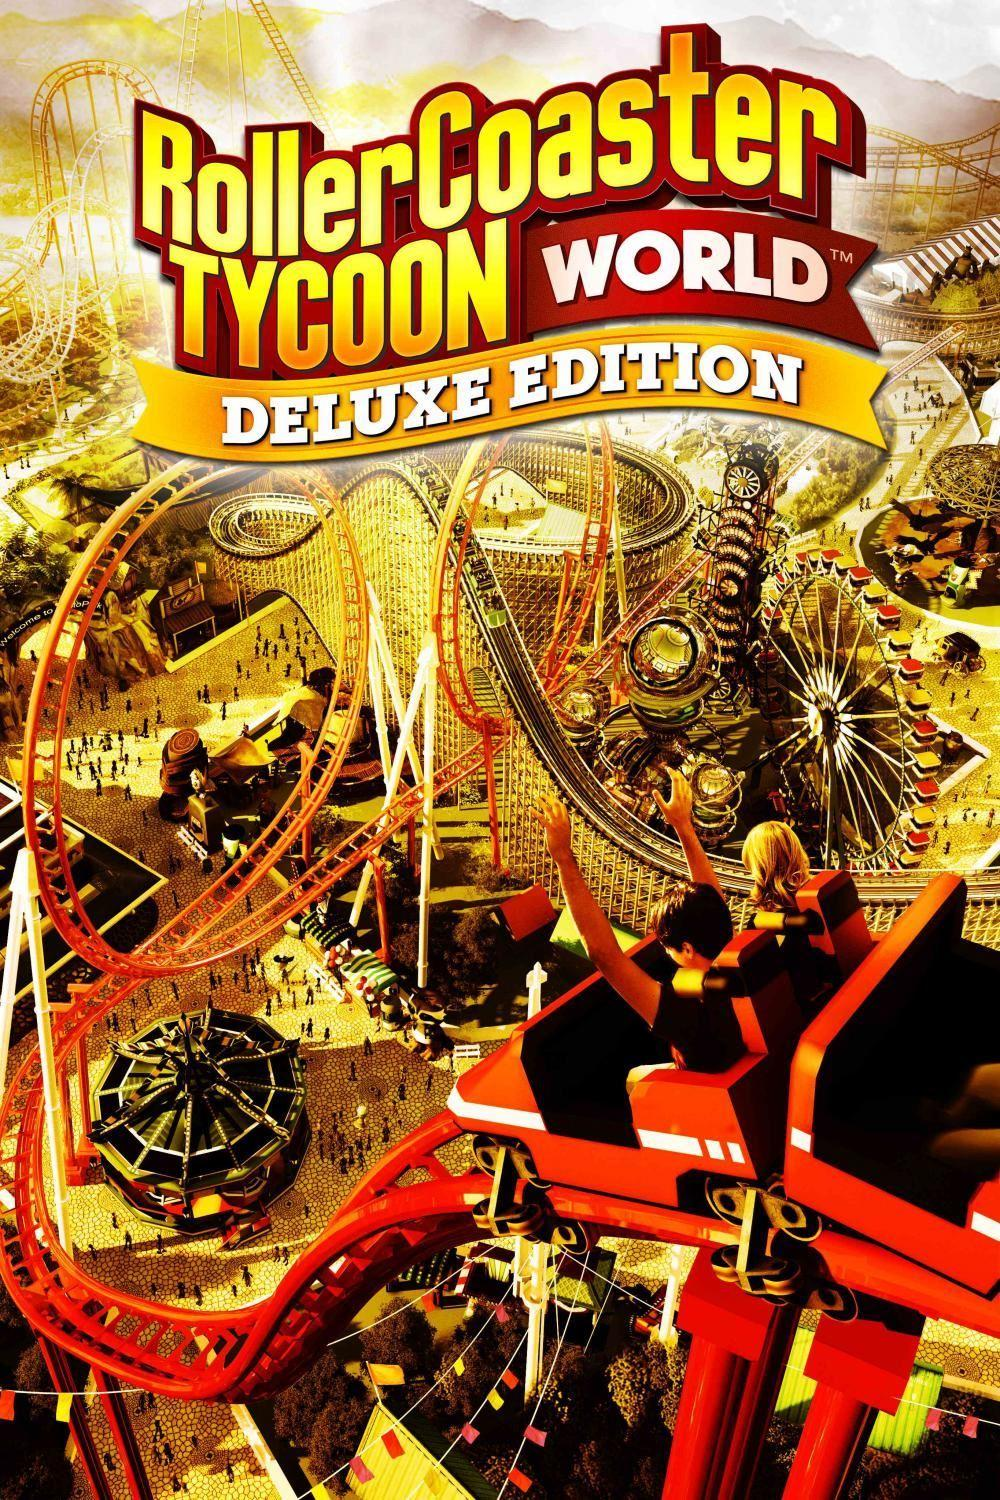 RollerCoaster Tycoon World™ Deluxe Edition